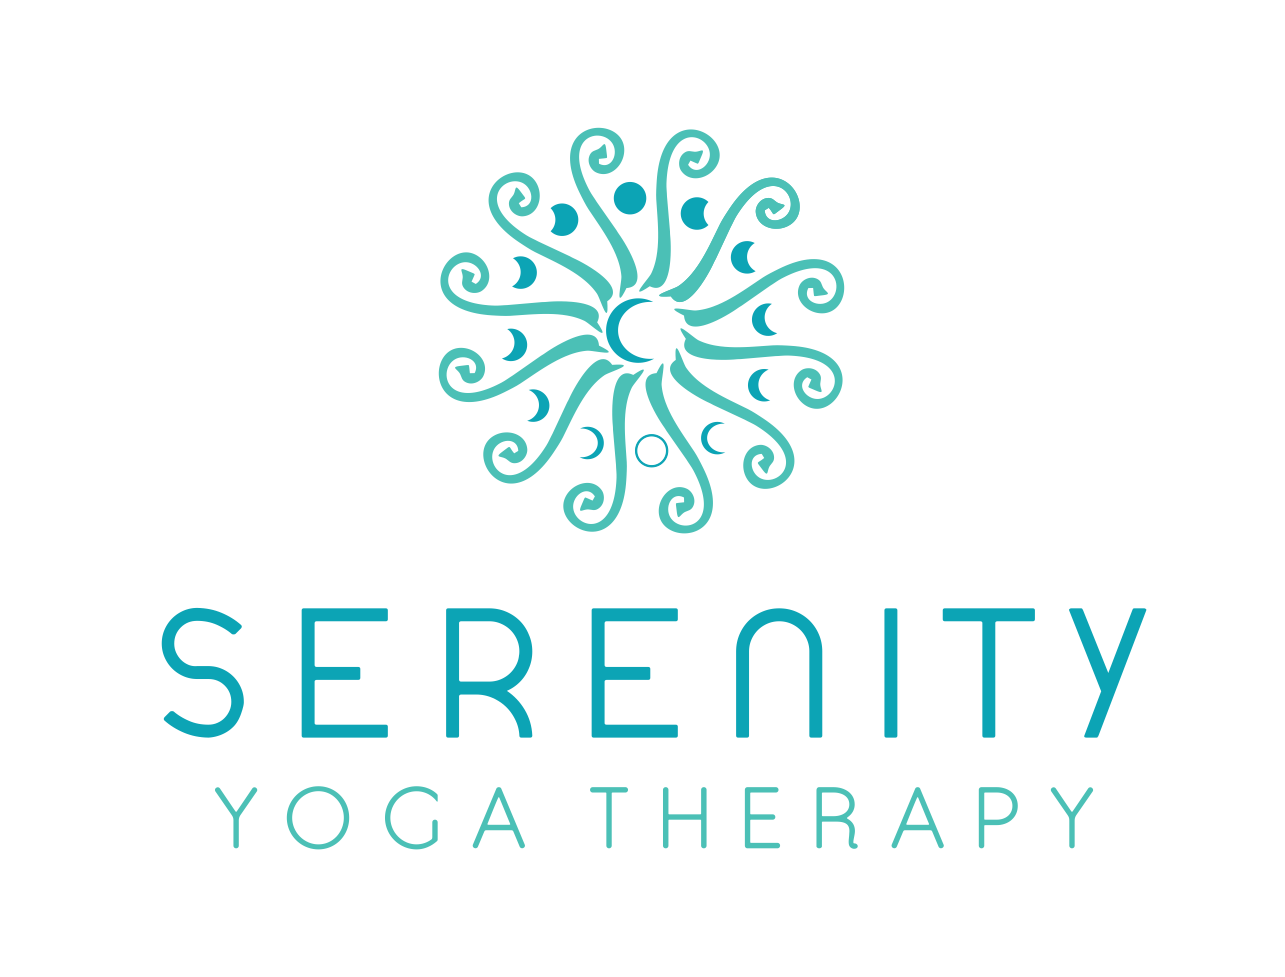 Degsing a peaceful logo for my Yoga Therapy practice.